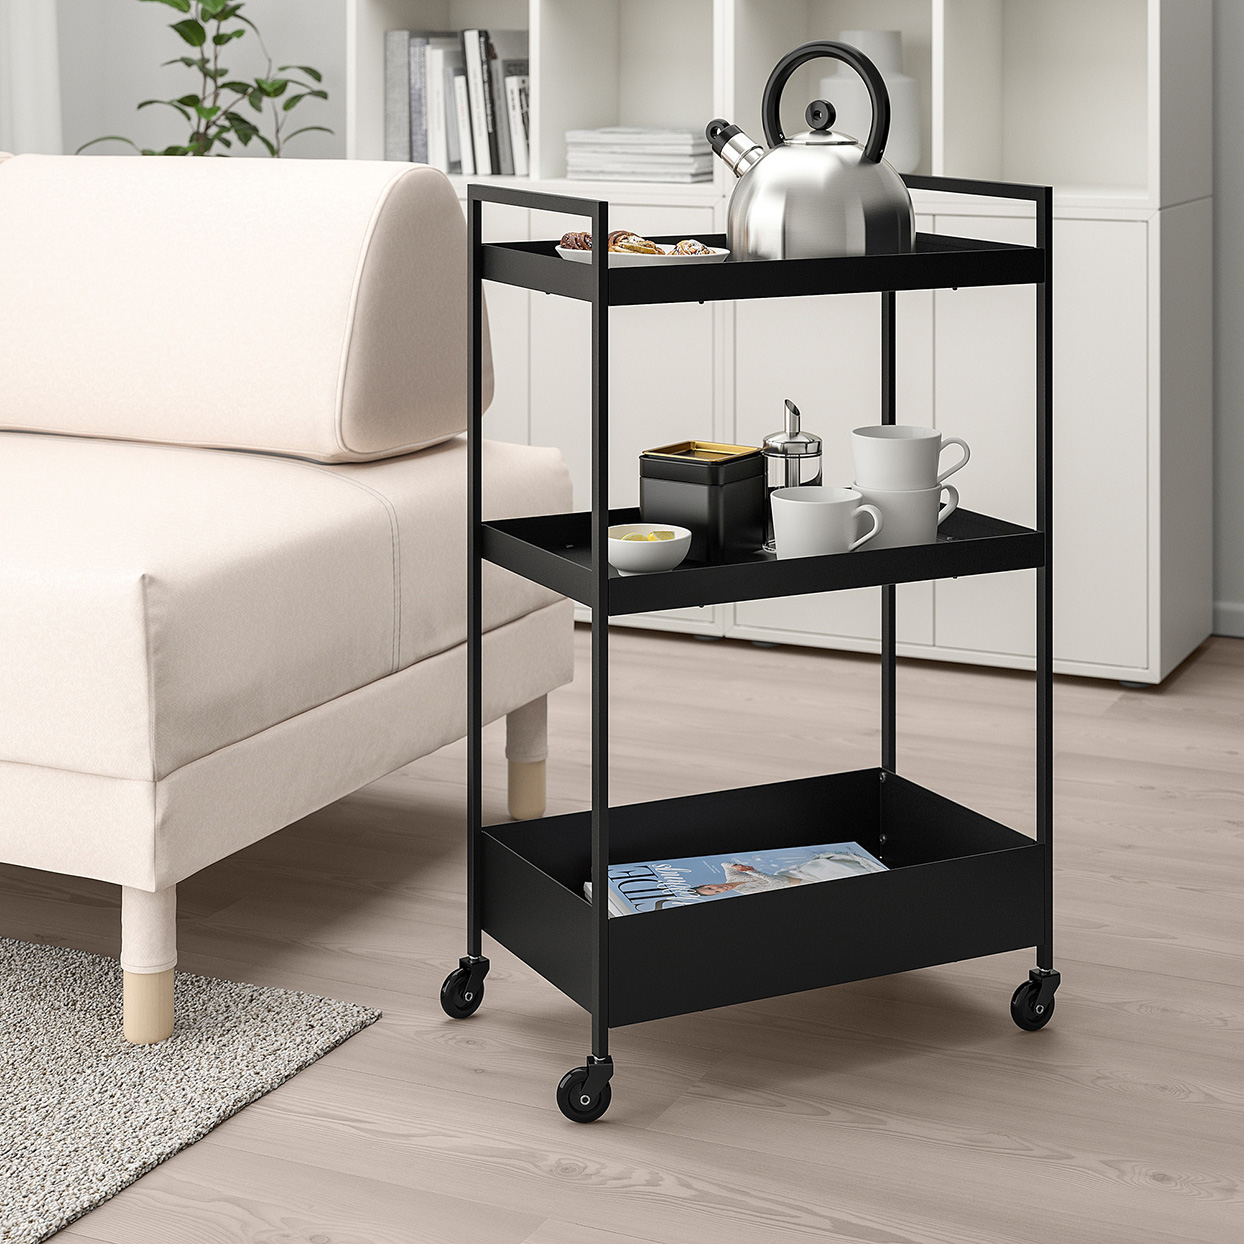 Black metal rolling storage cart holding coffee mugs and kettle next to white sofa